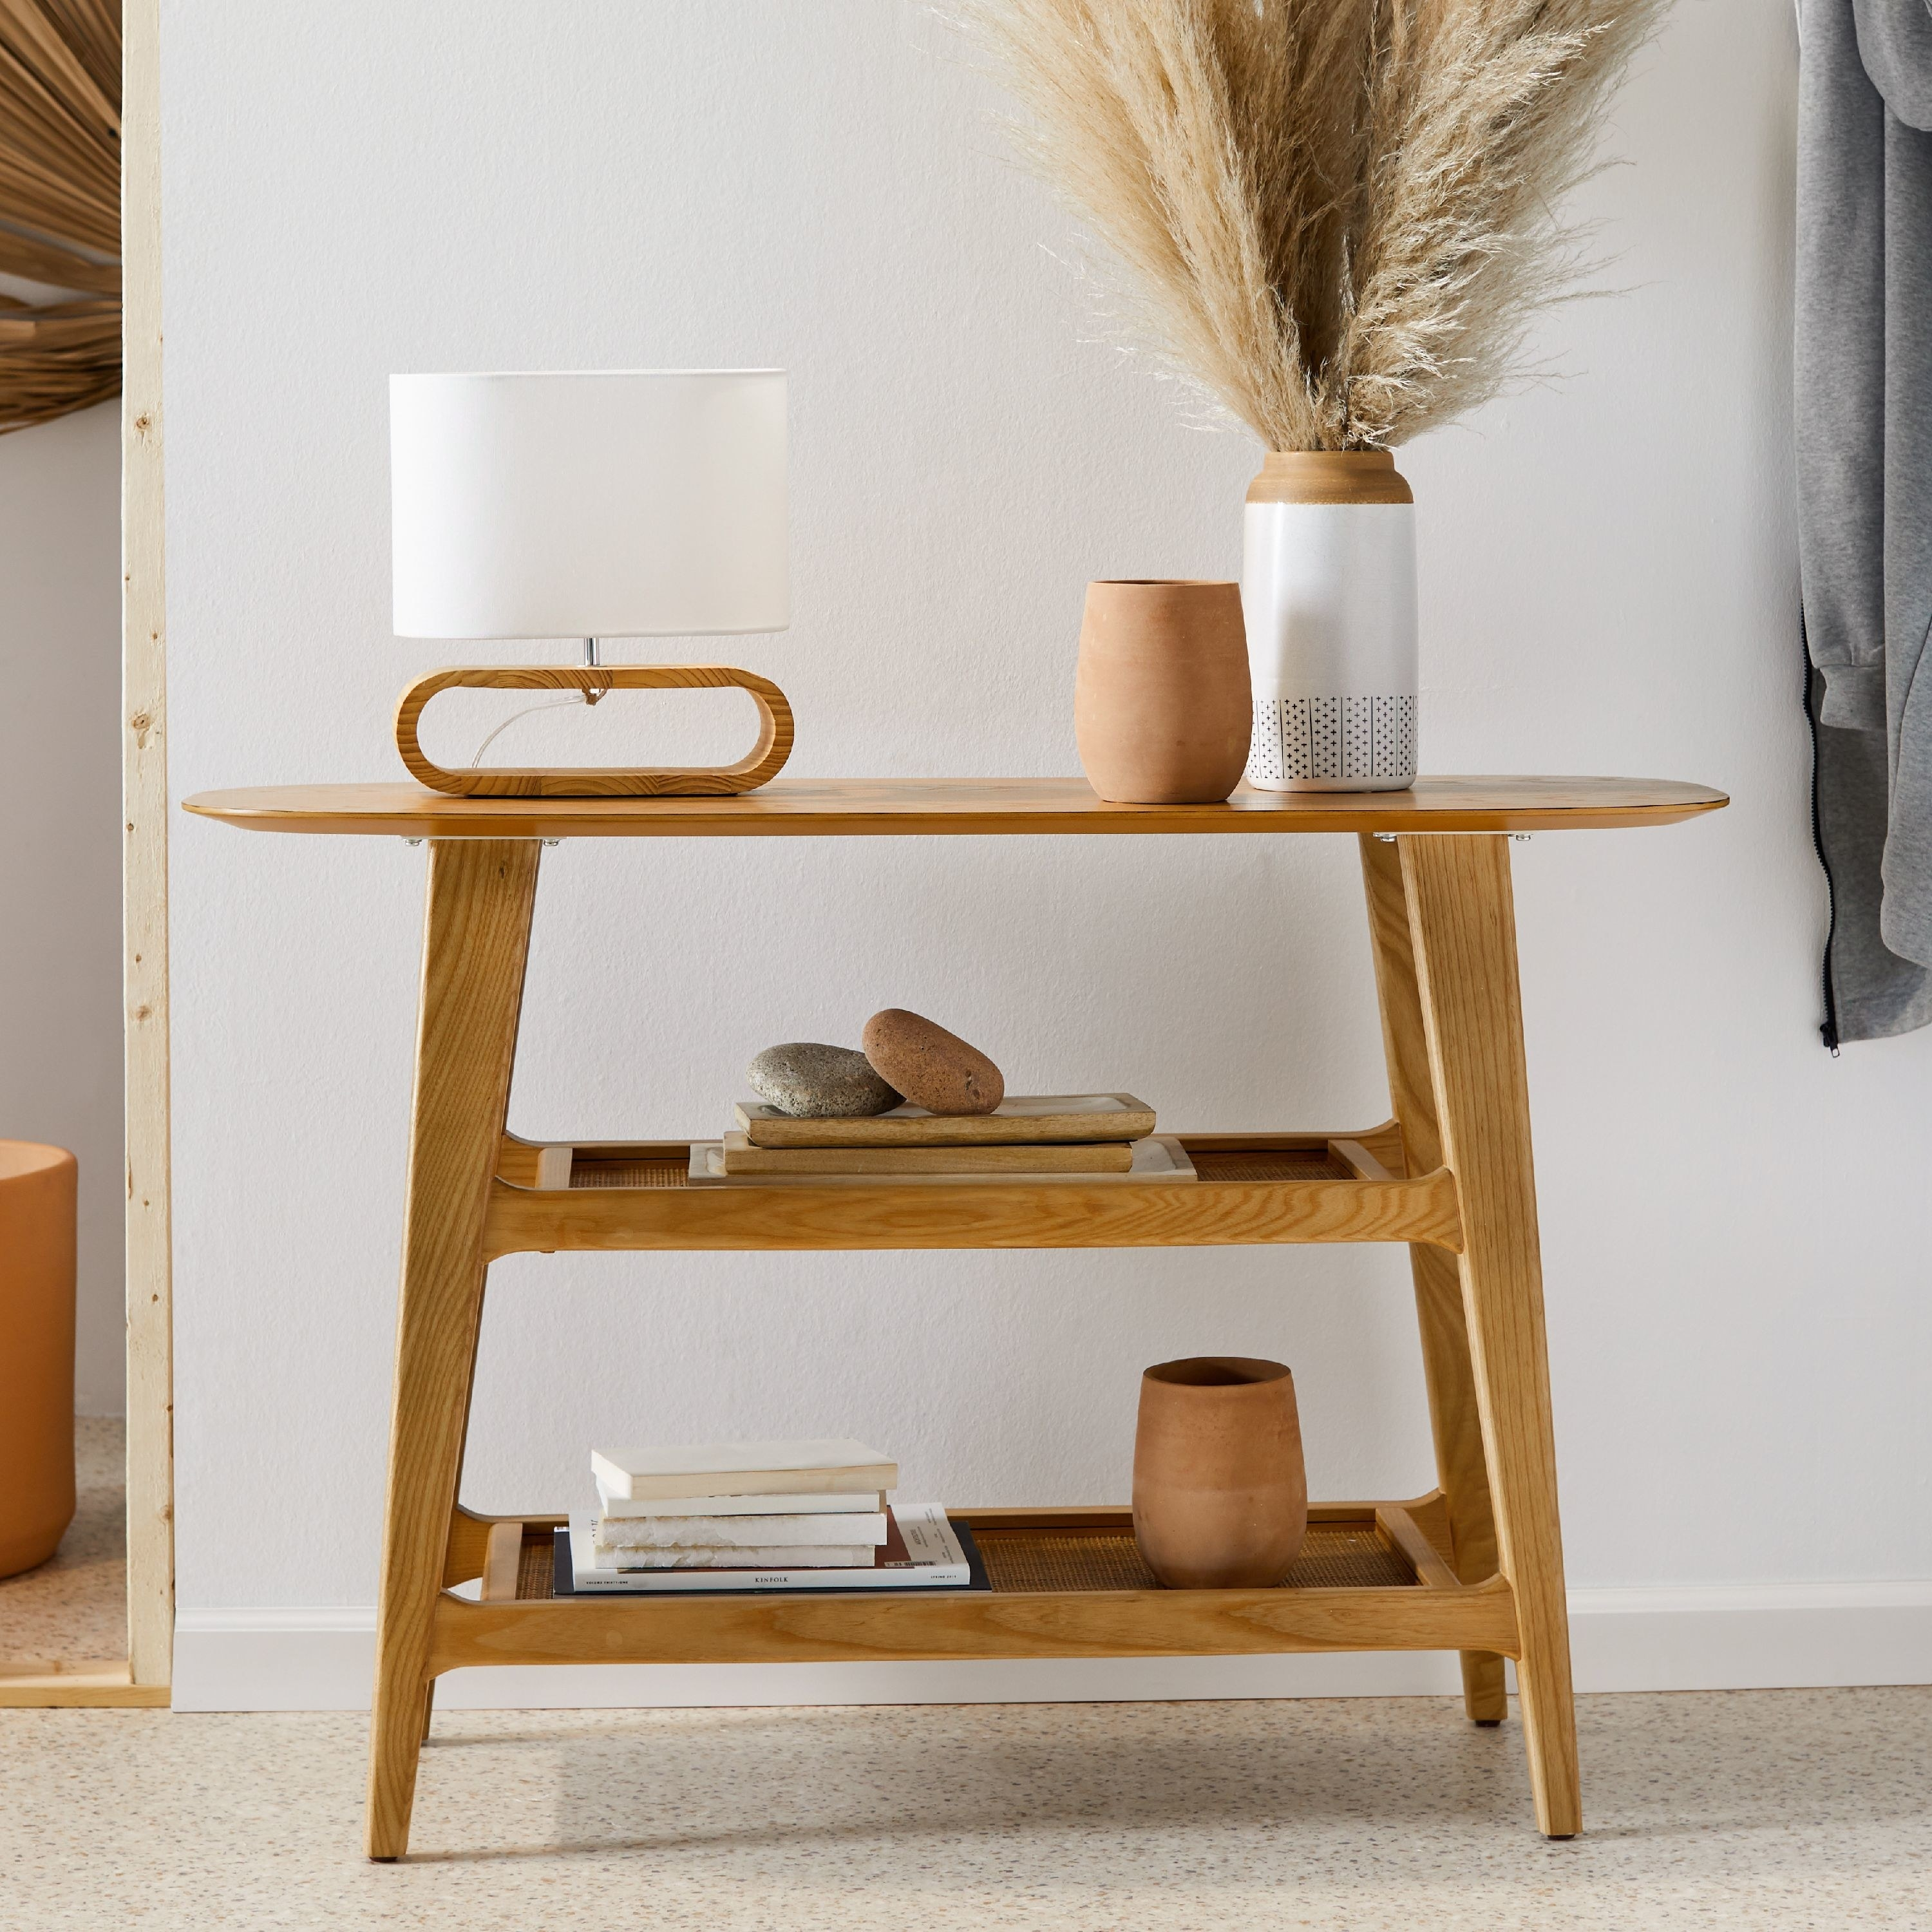 A wooden console table with three shelves